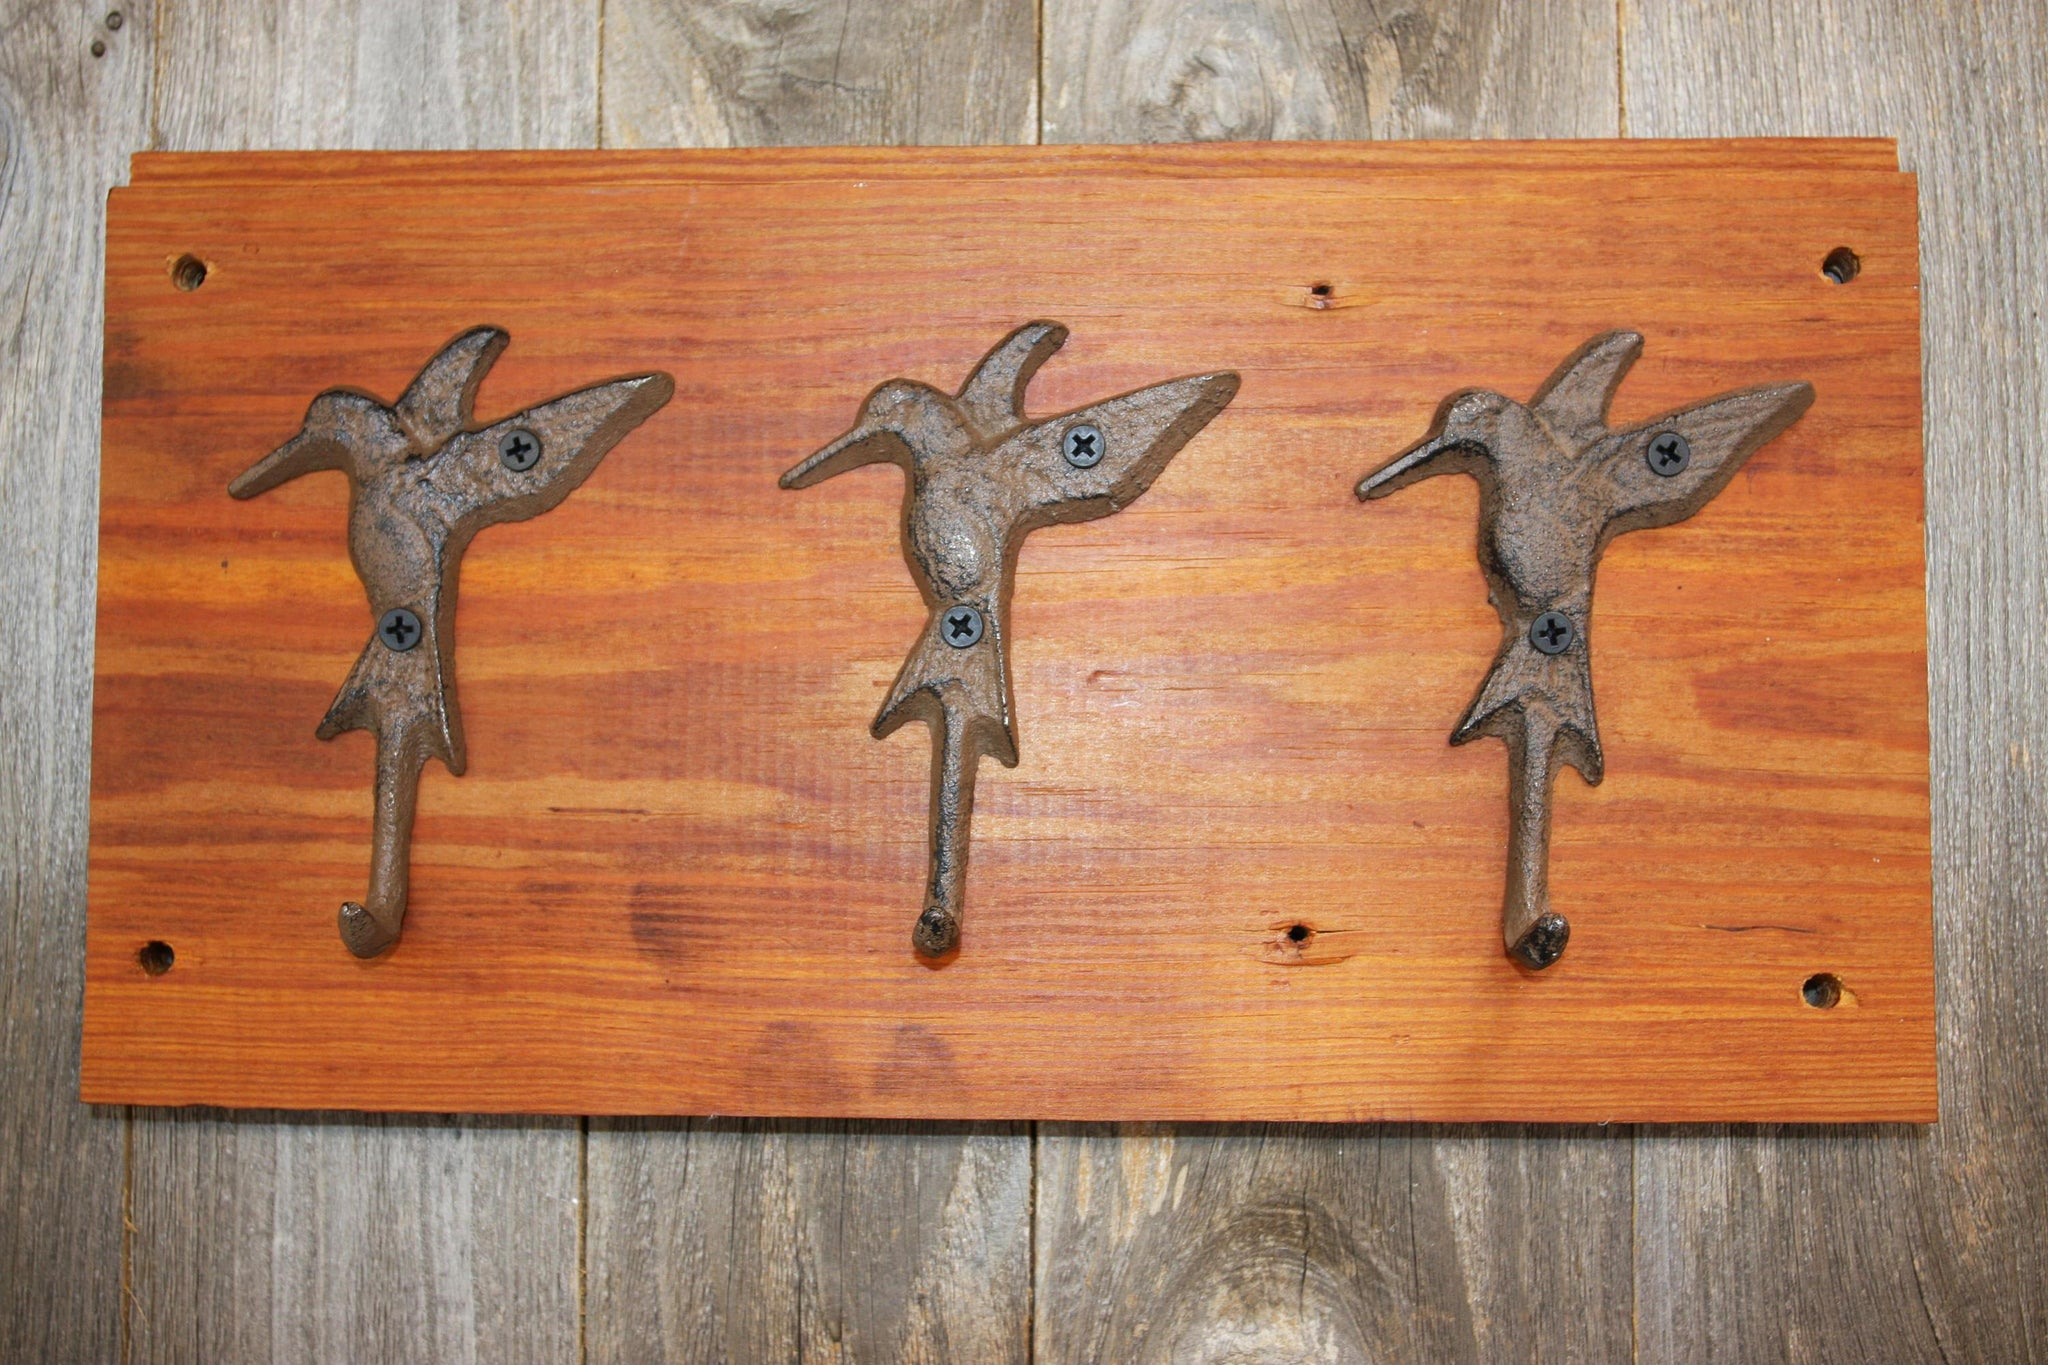 Country Cottage Bath Towel Hooks Hummingbird Garden Design, Handmade in USA,  Reclaimed 100 Year Old Wood, The Country Hookers, CH-7